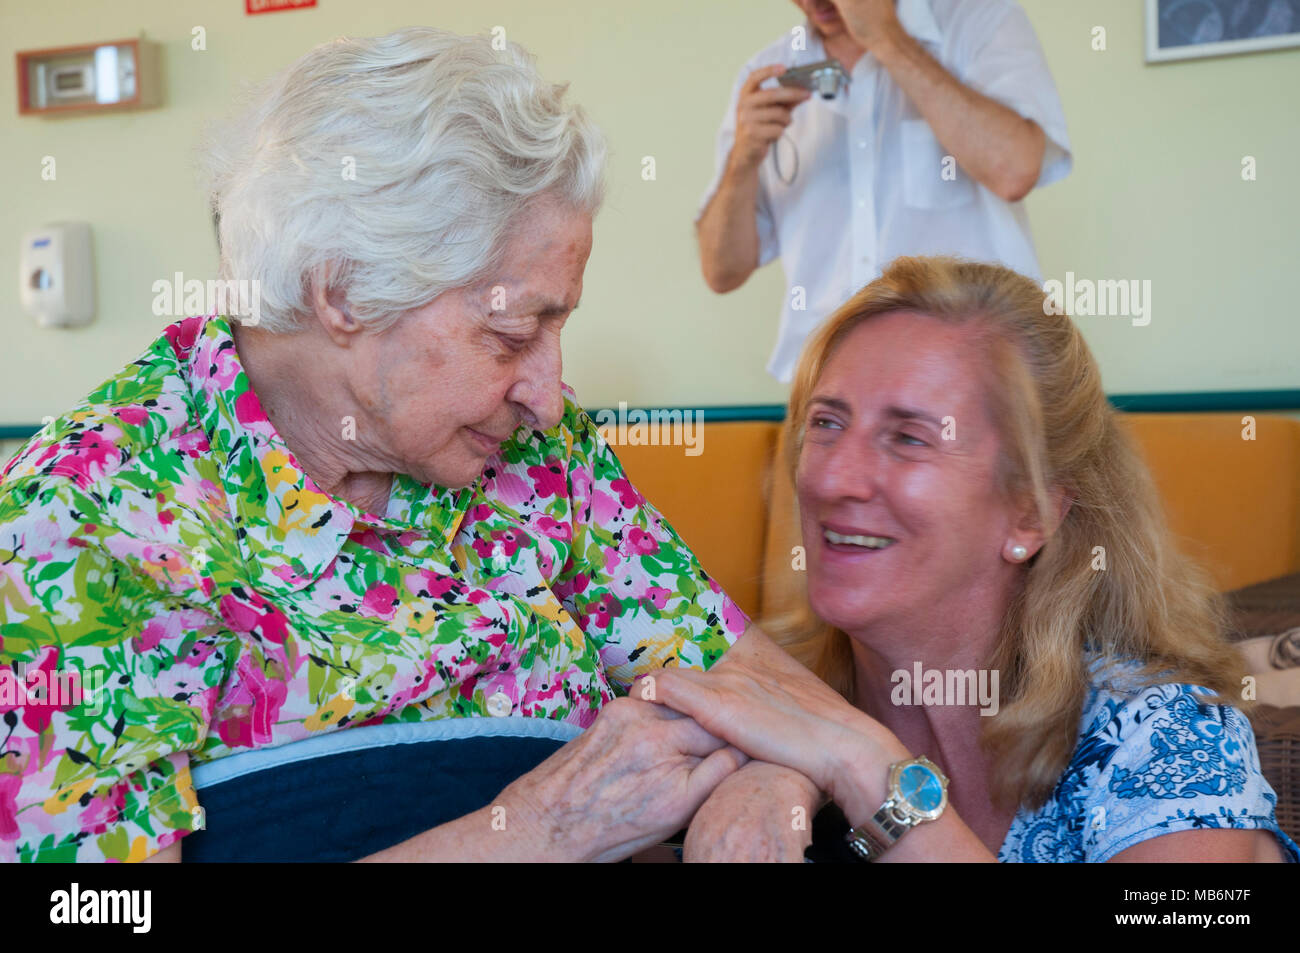 Old lady and mature woman looking at each other and smiling. - Stock Image